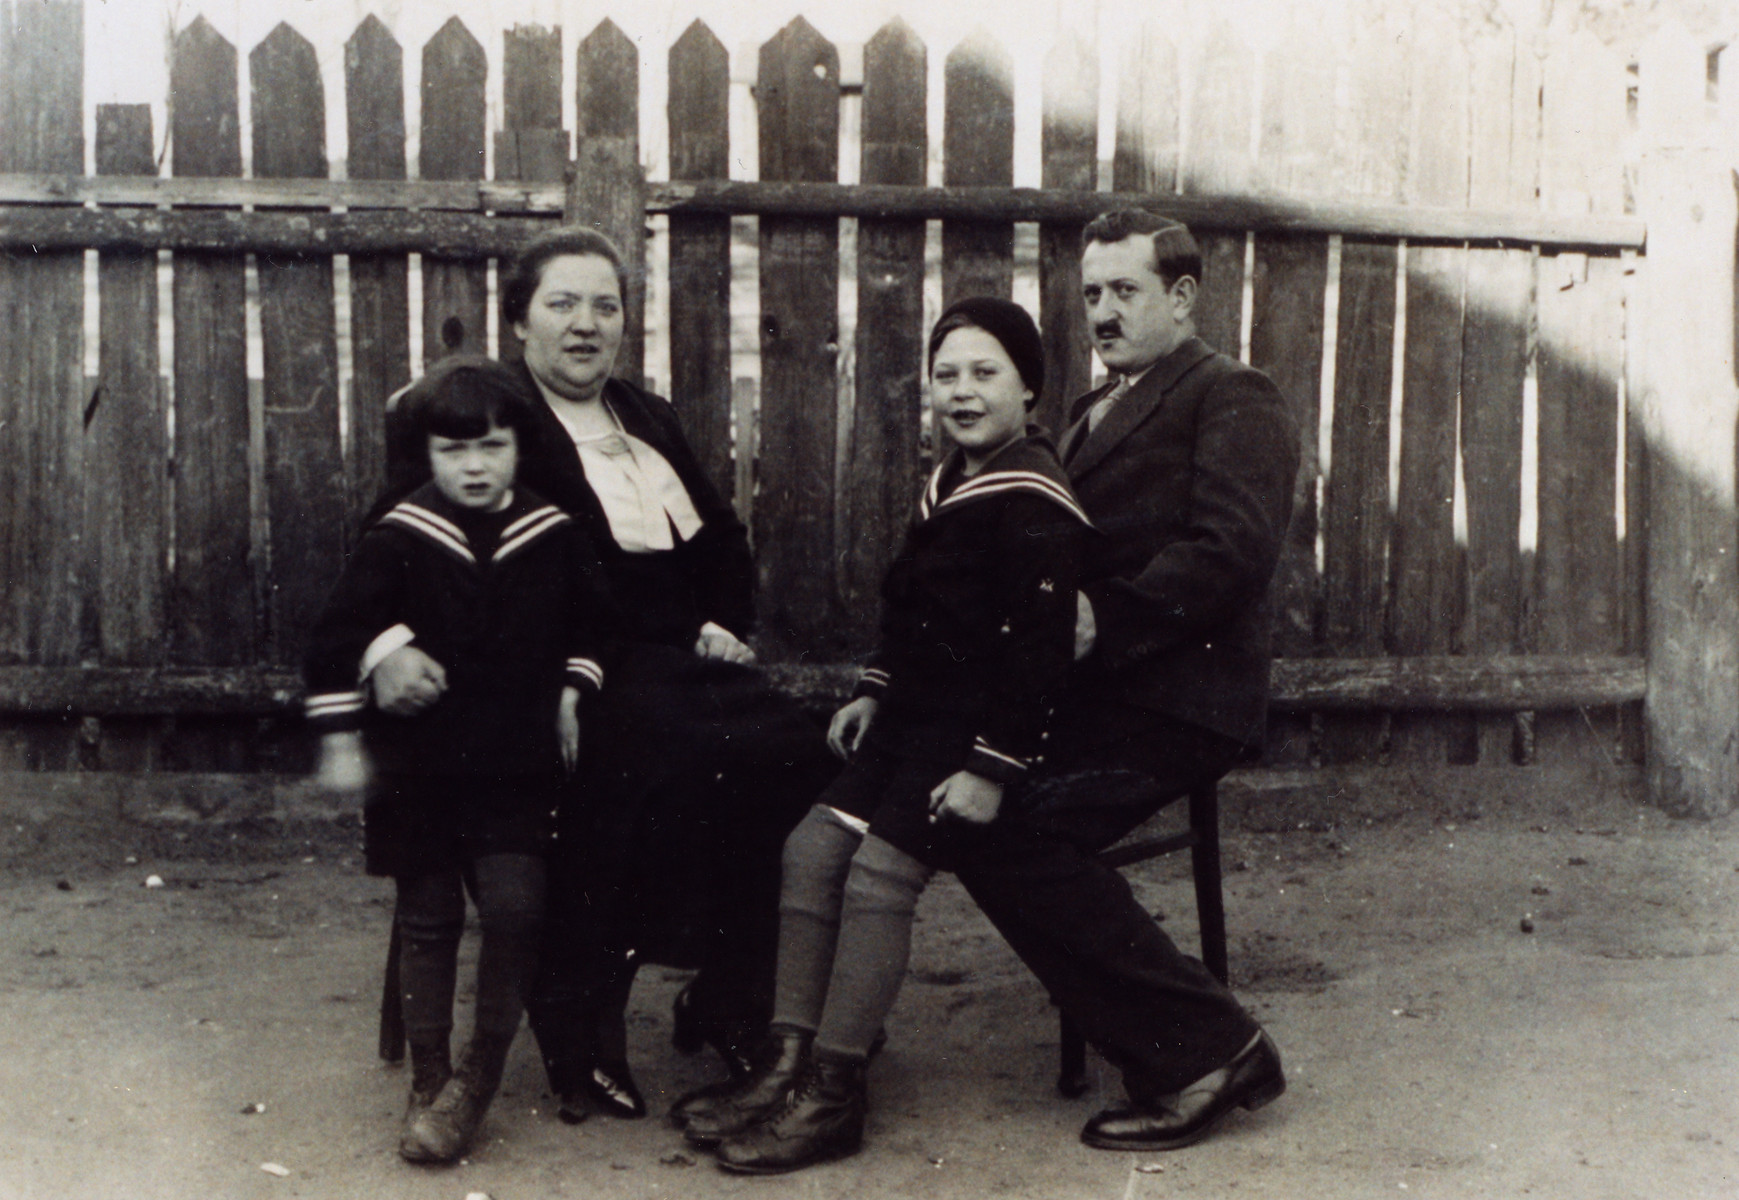 The Guth family sits outdoors in front of a wooden fence.  Pictured from left to right are Kurt, Rosa, Heinz and Felix Guth.